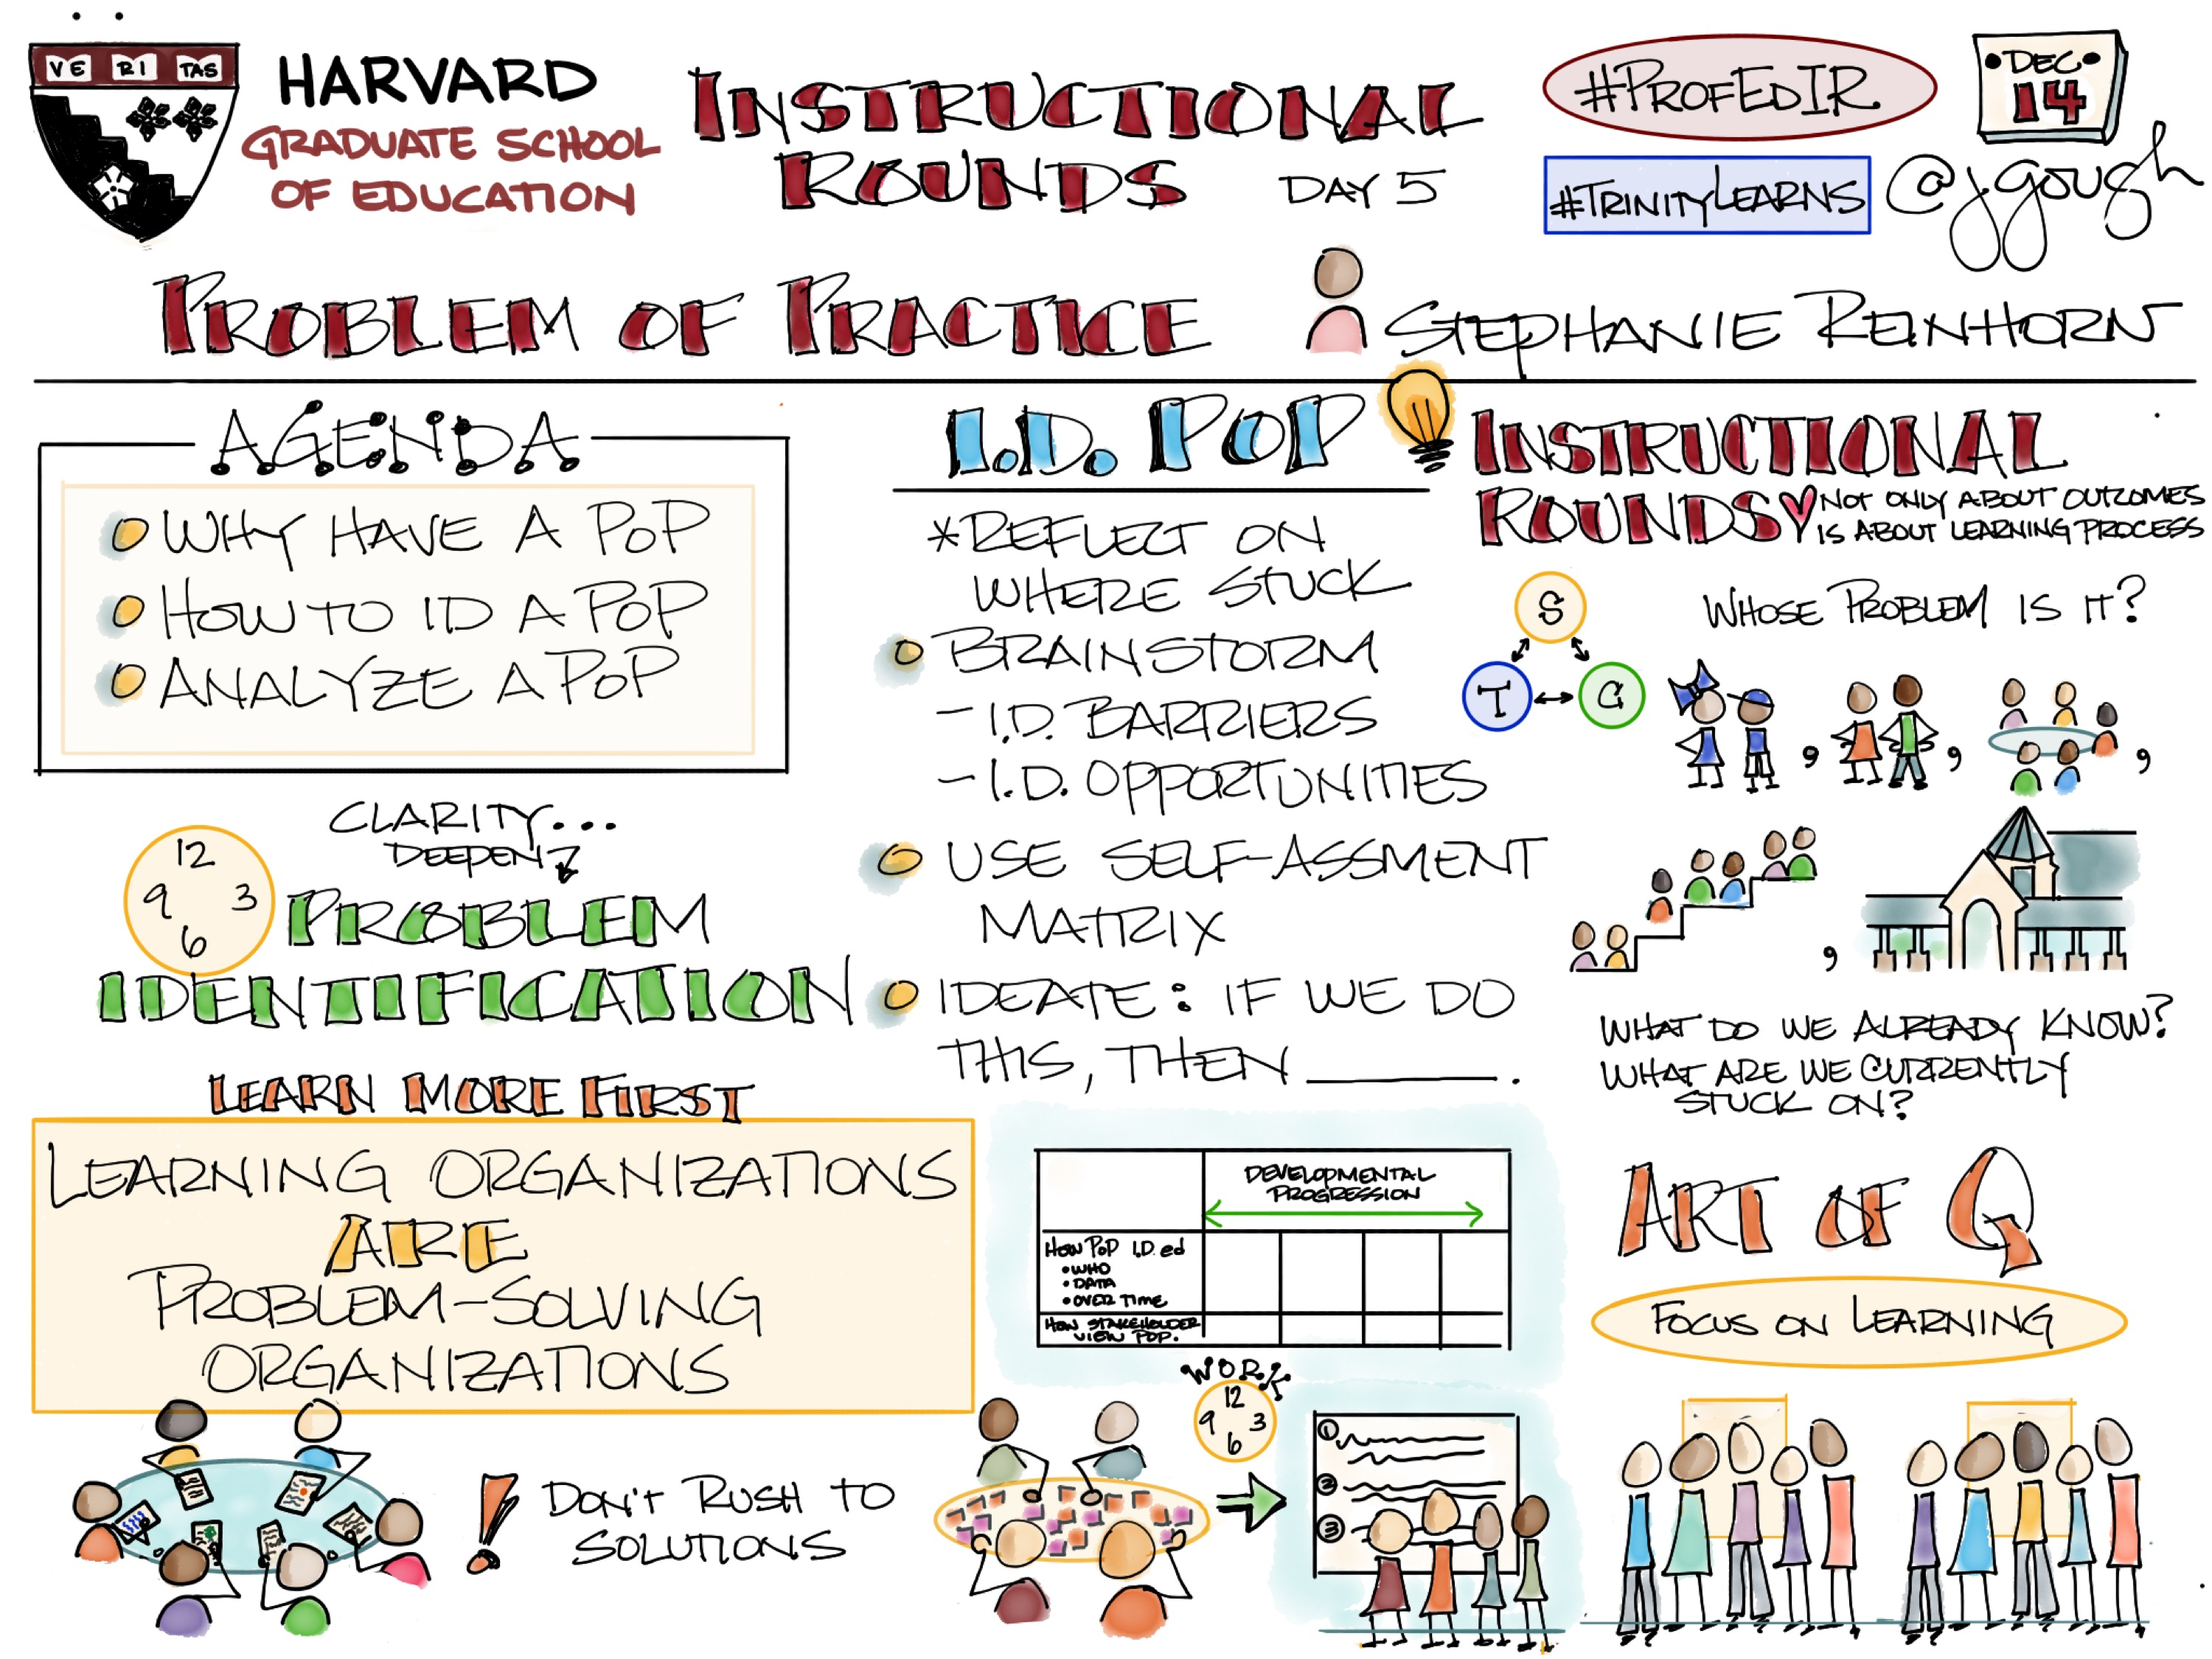 Sharing my #Sketchnotes from #ProfEdIR @HGSE Instructional Rounds Problem of Practice with Stephanie Reinhorn – #TrinityLearns